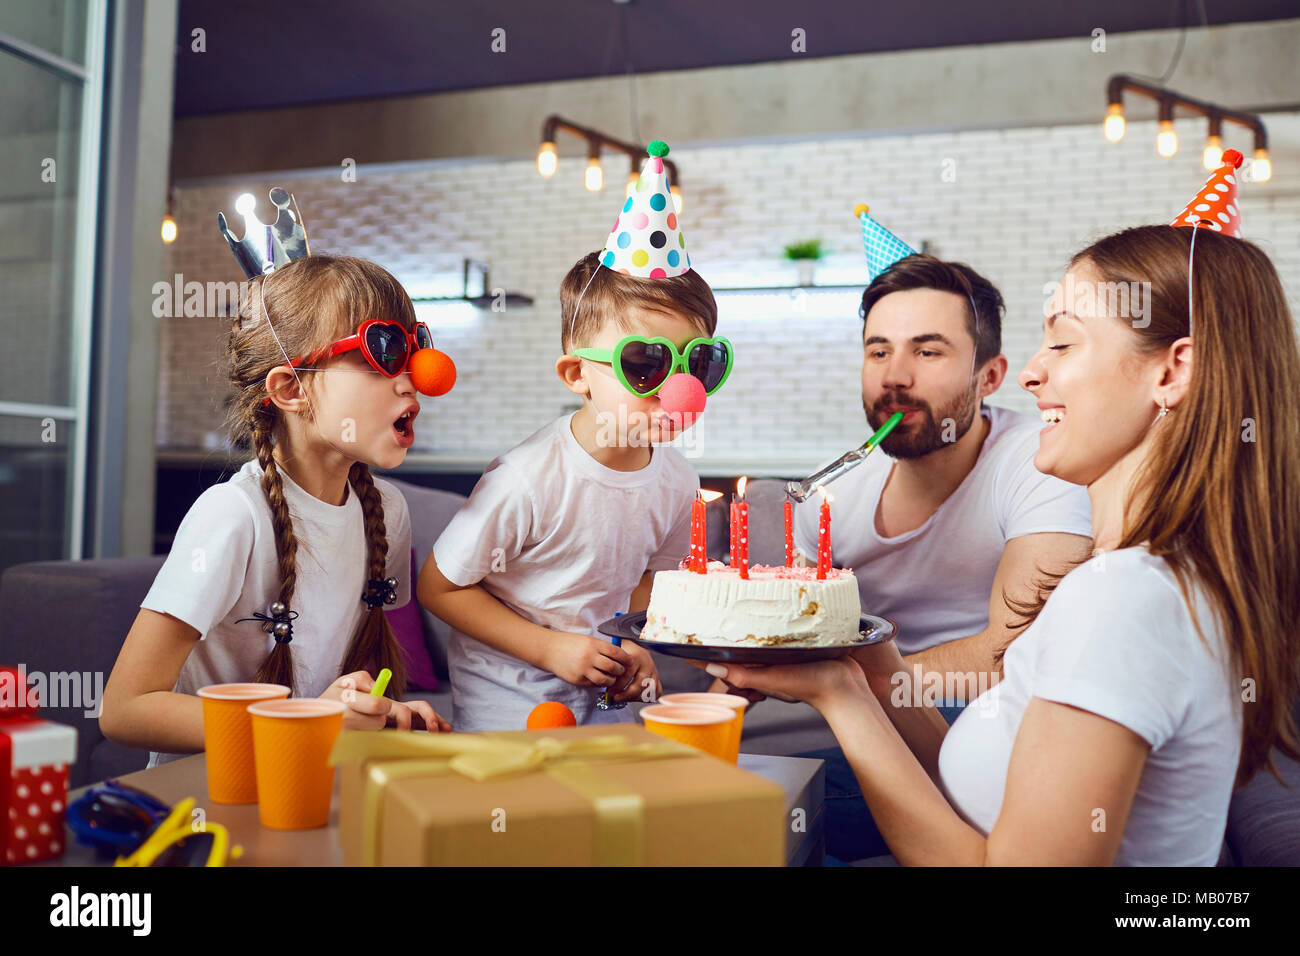 A happy family with a  cake celebrates a birthday party. - Stock Image